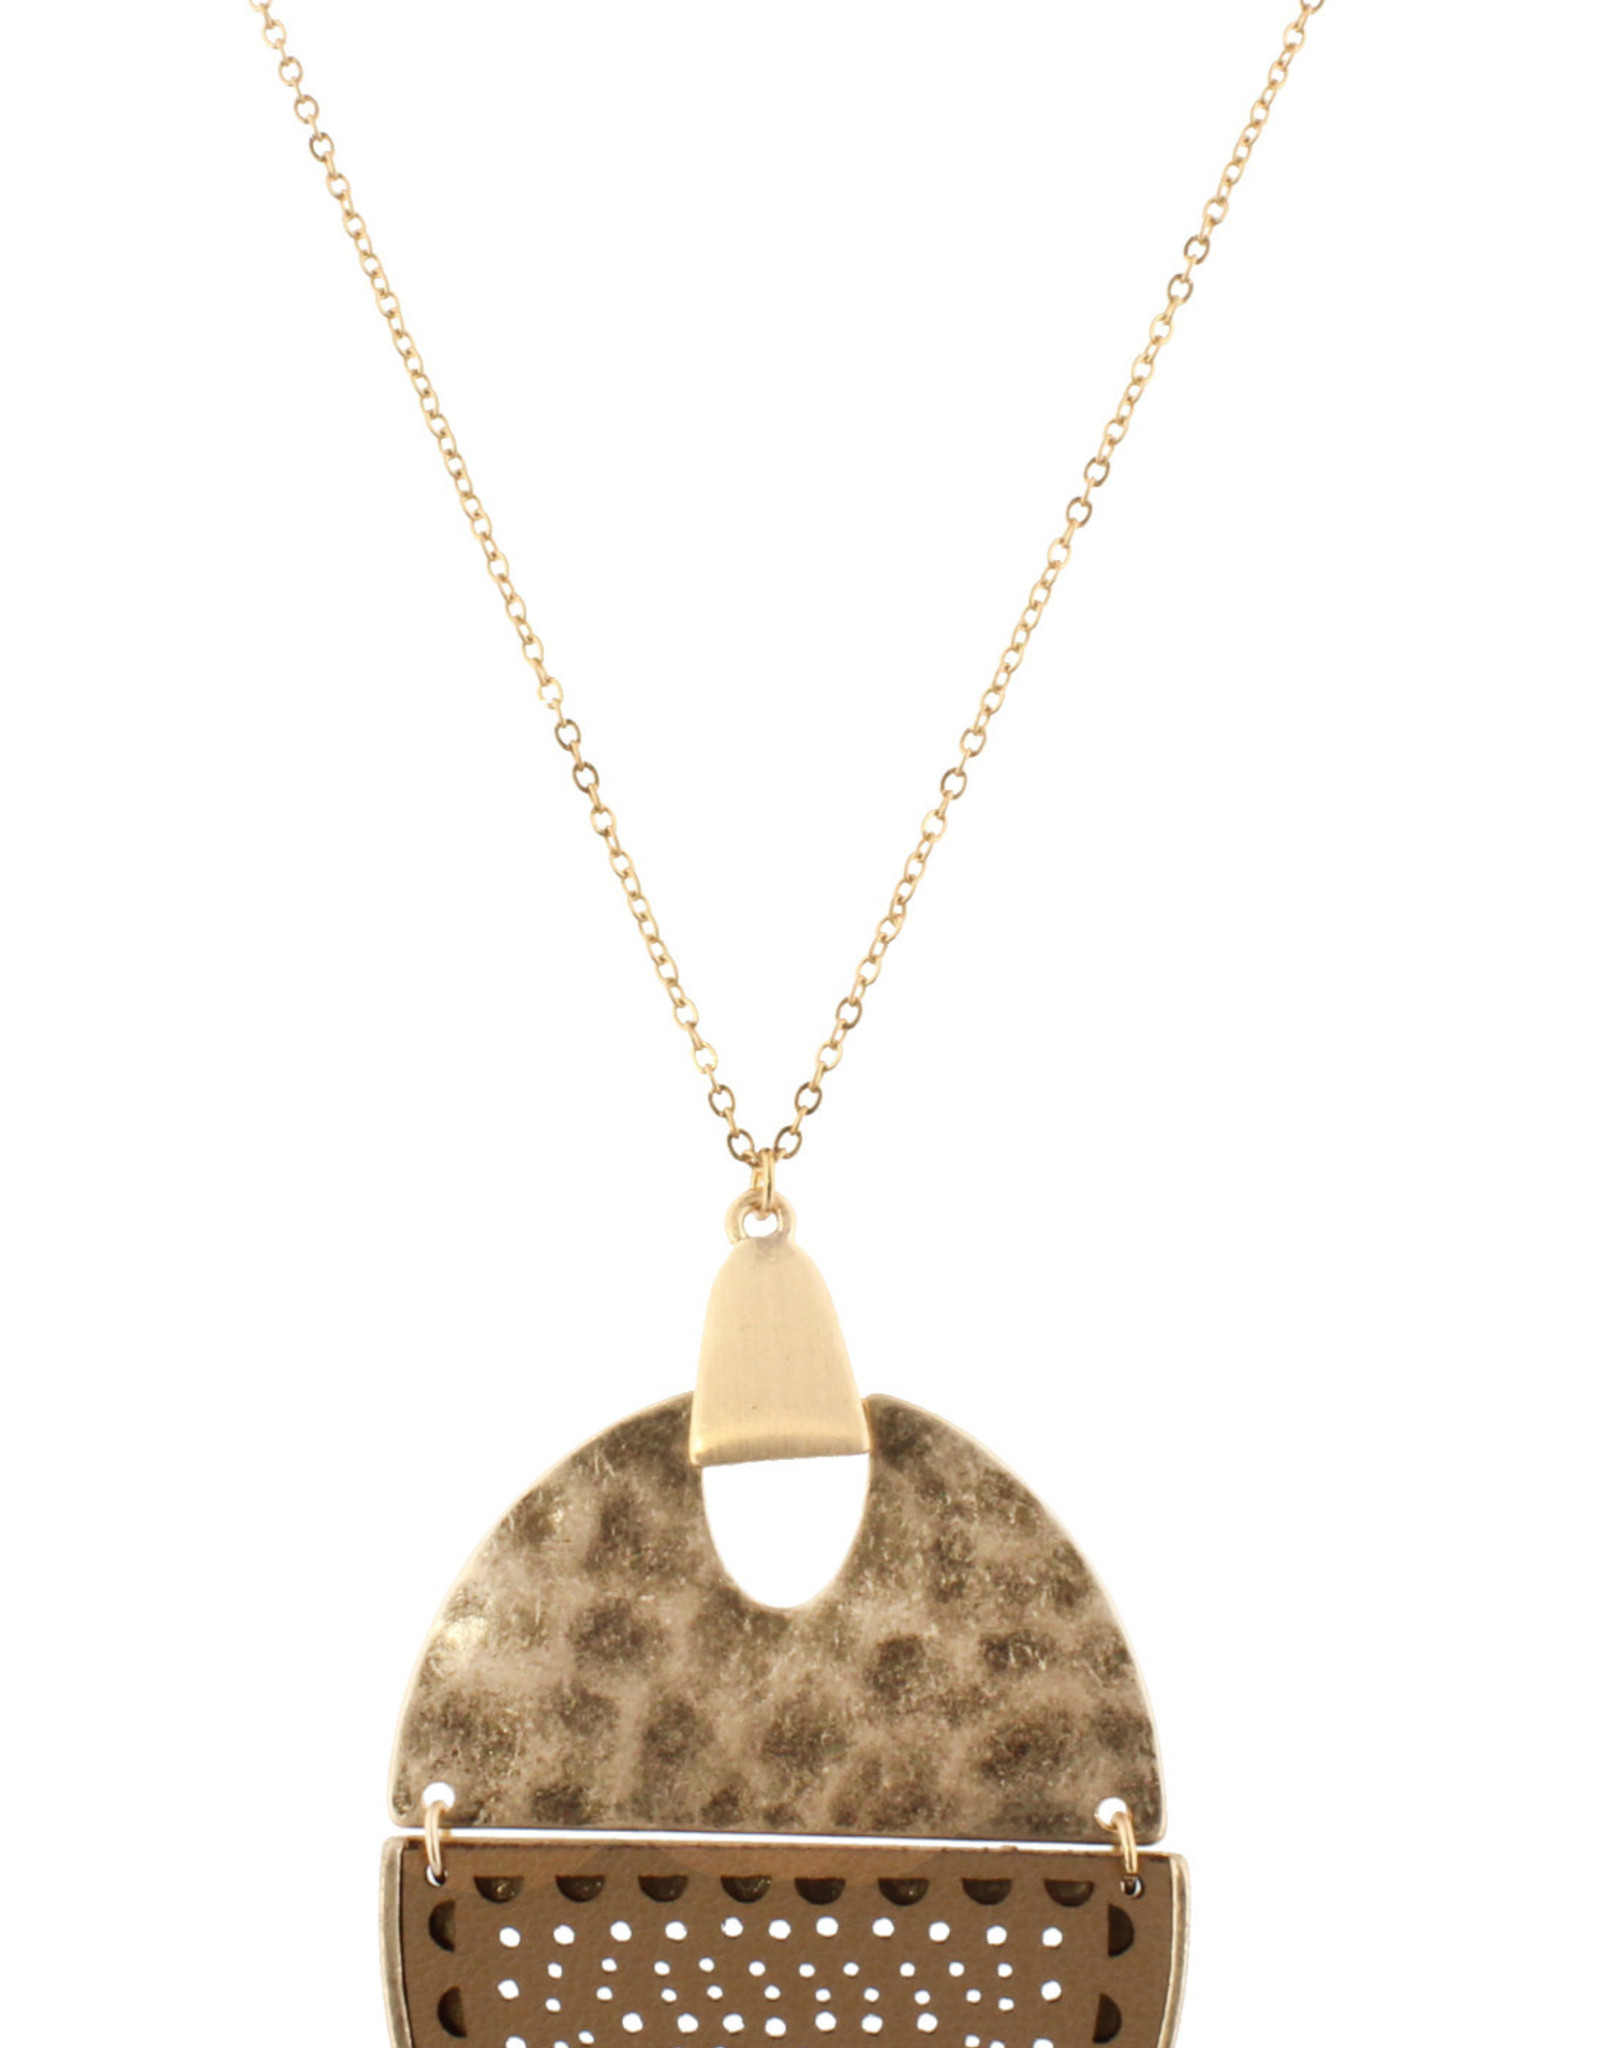 Hammered Gold and brown leather necklace